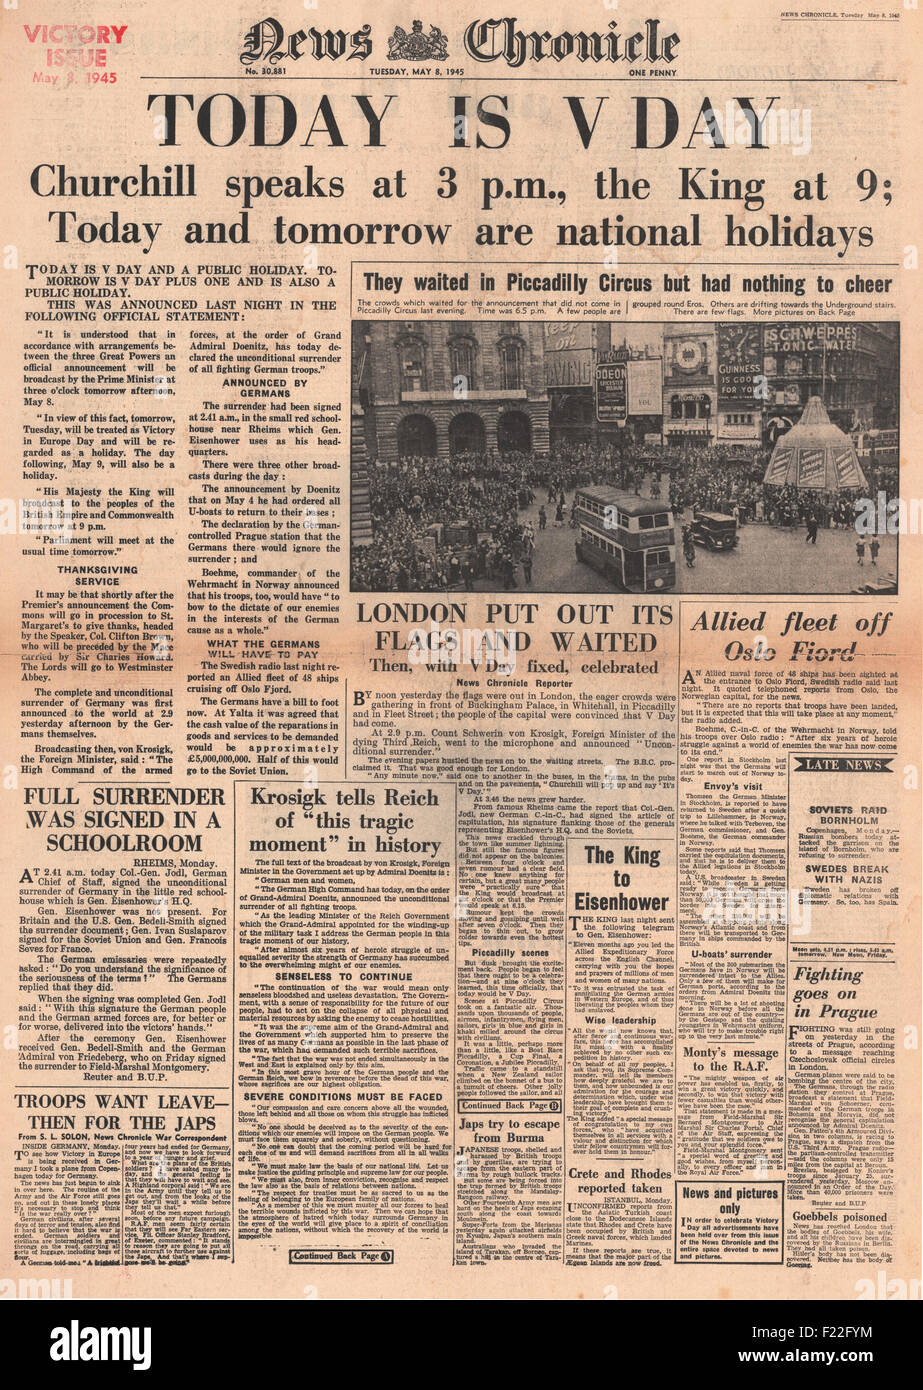 1945 News Chronicle front page reporting VE Day Stock Photo